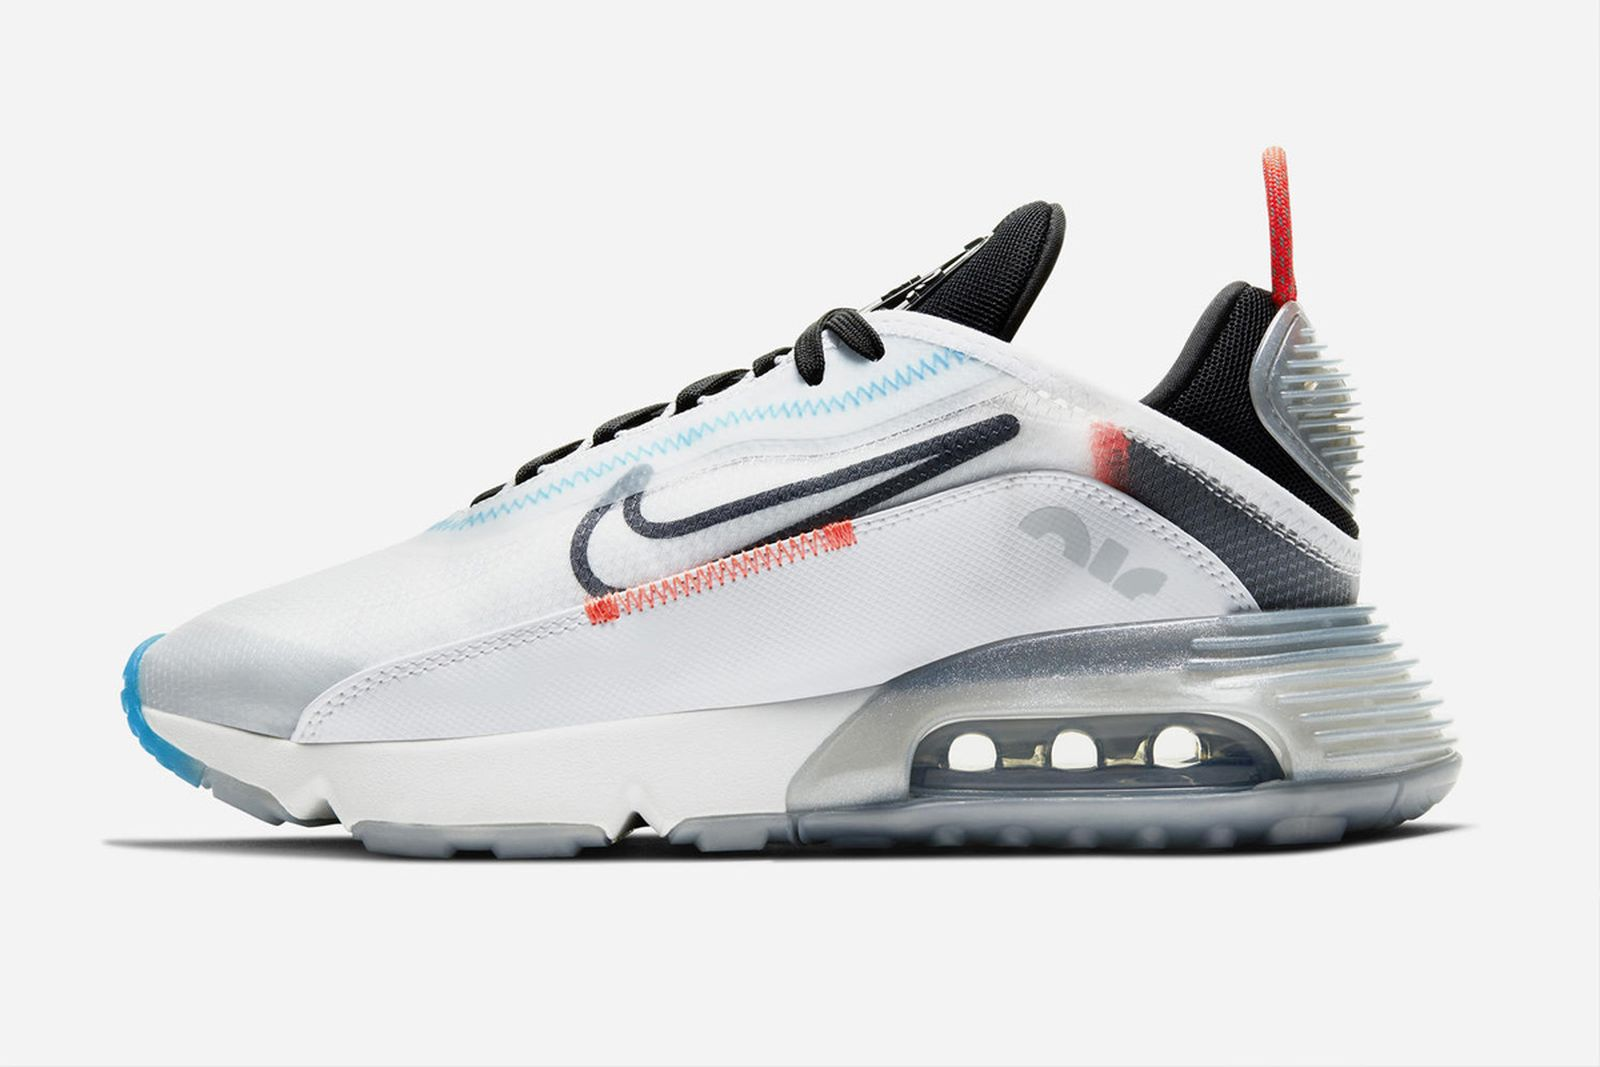 nike-air-max-2090-release-date-price-04